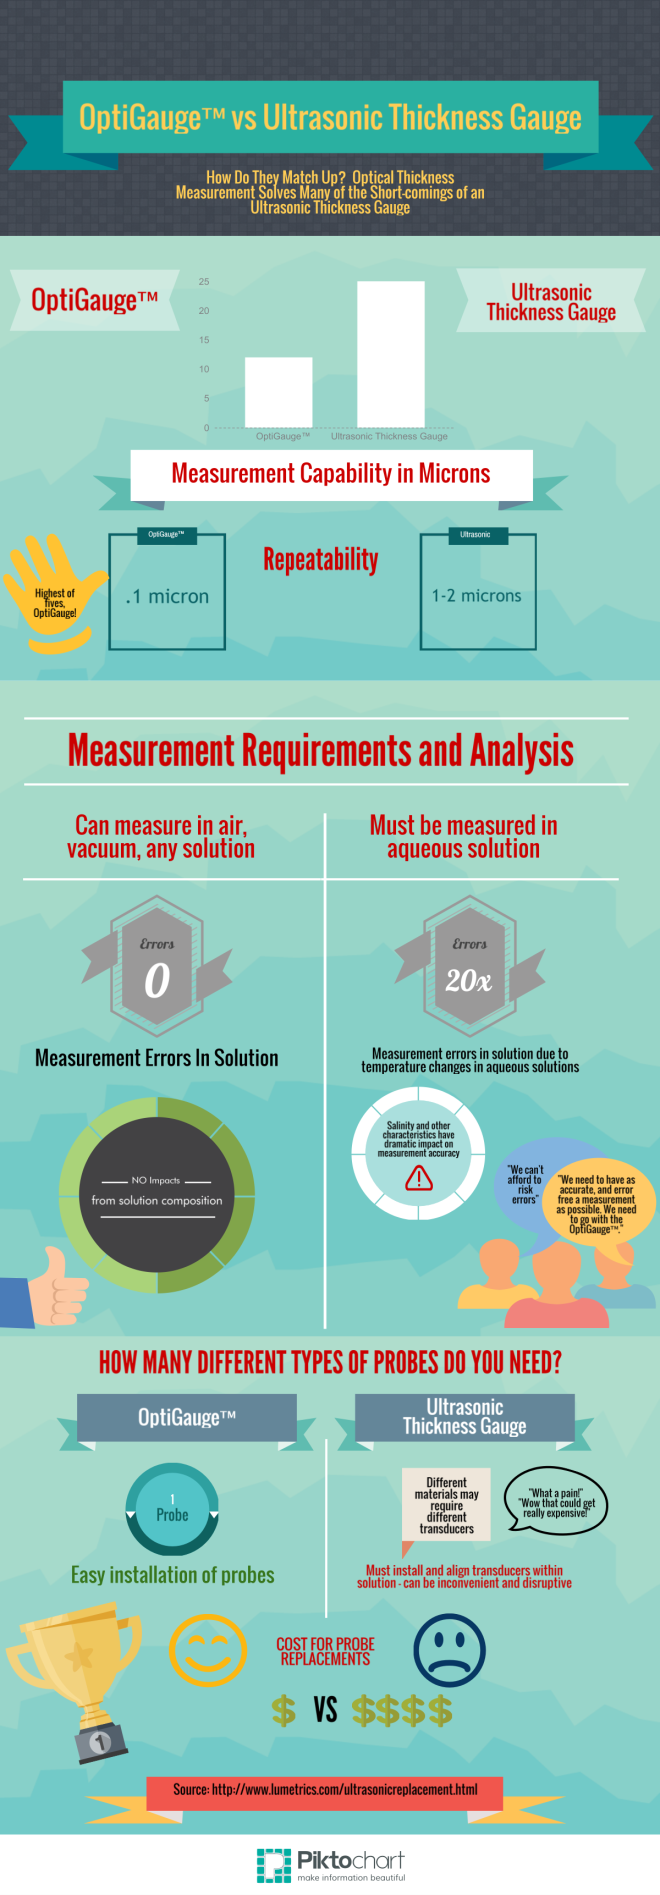 ultrasonic thickness gauge replacement, optical thickness measurement, infographic